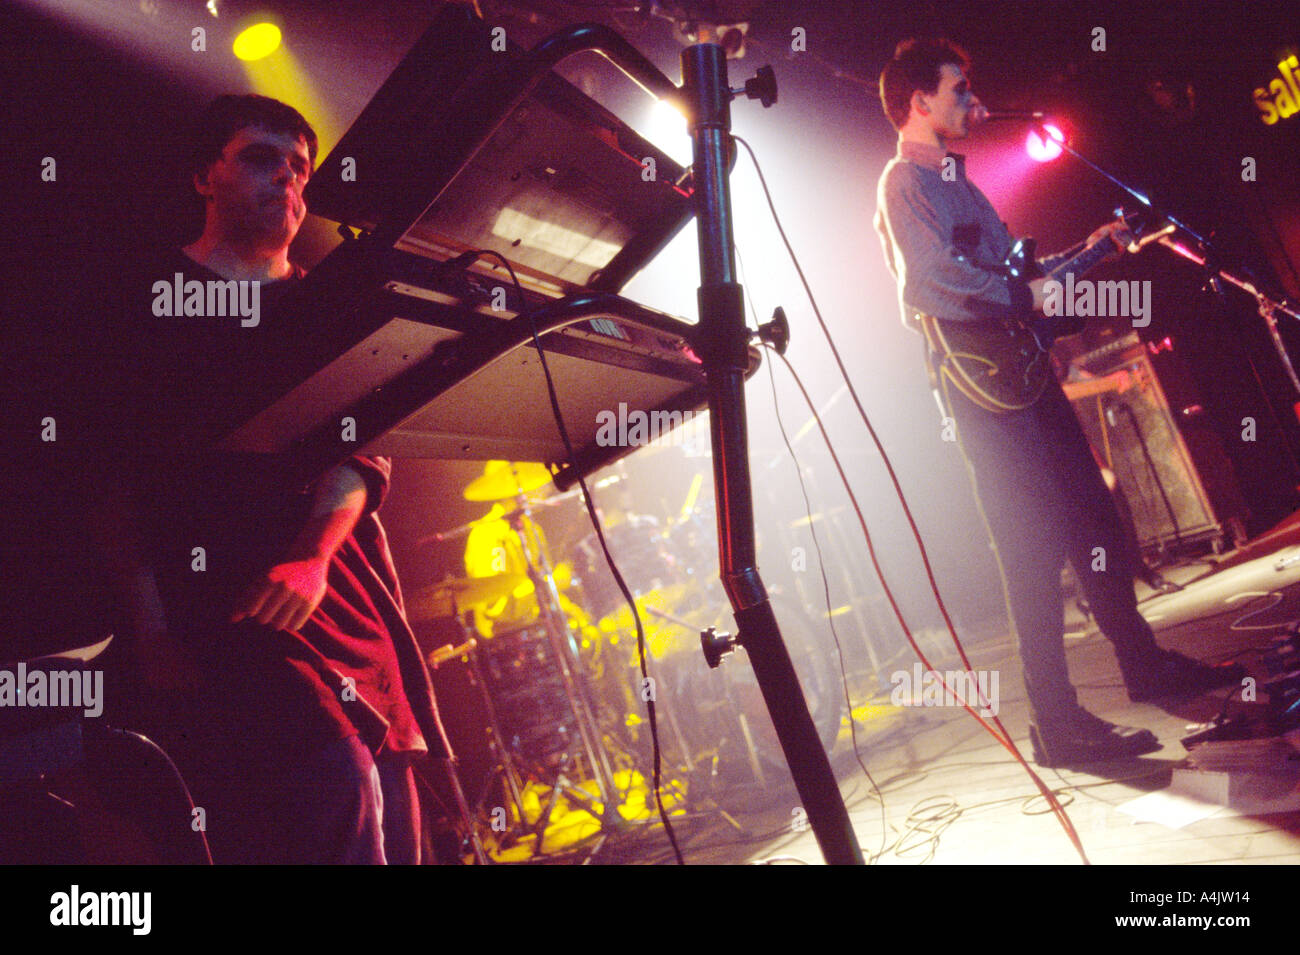 Pop Rock concert in KGB. - Stock Image